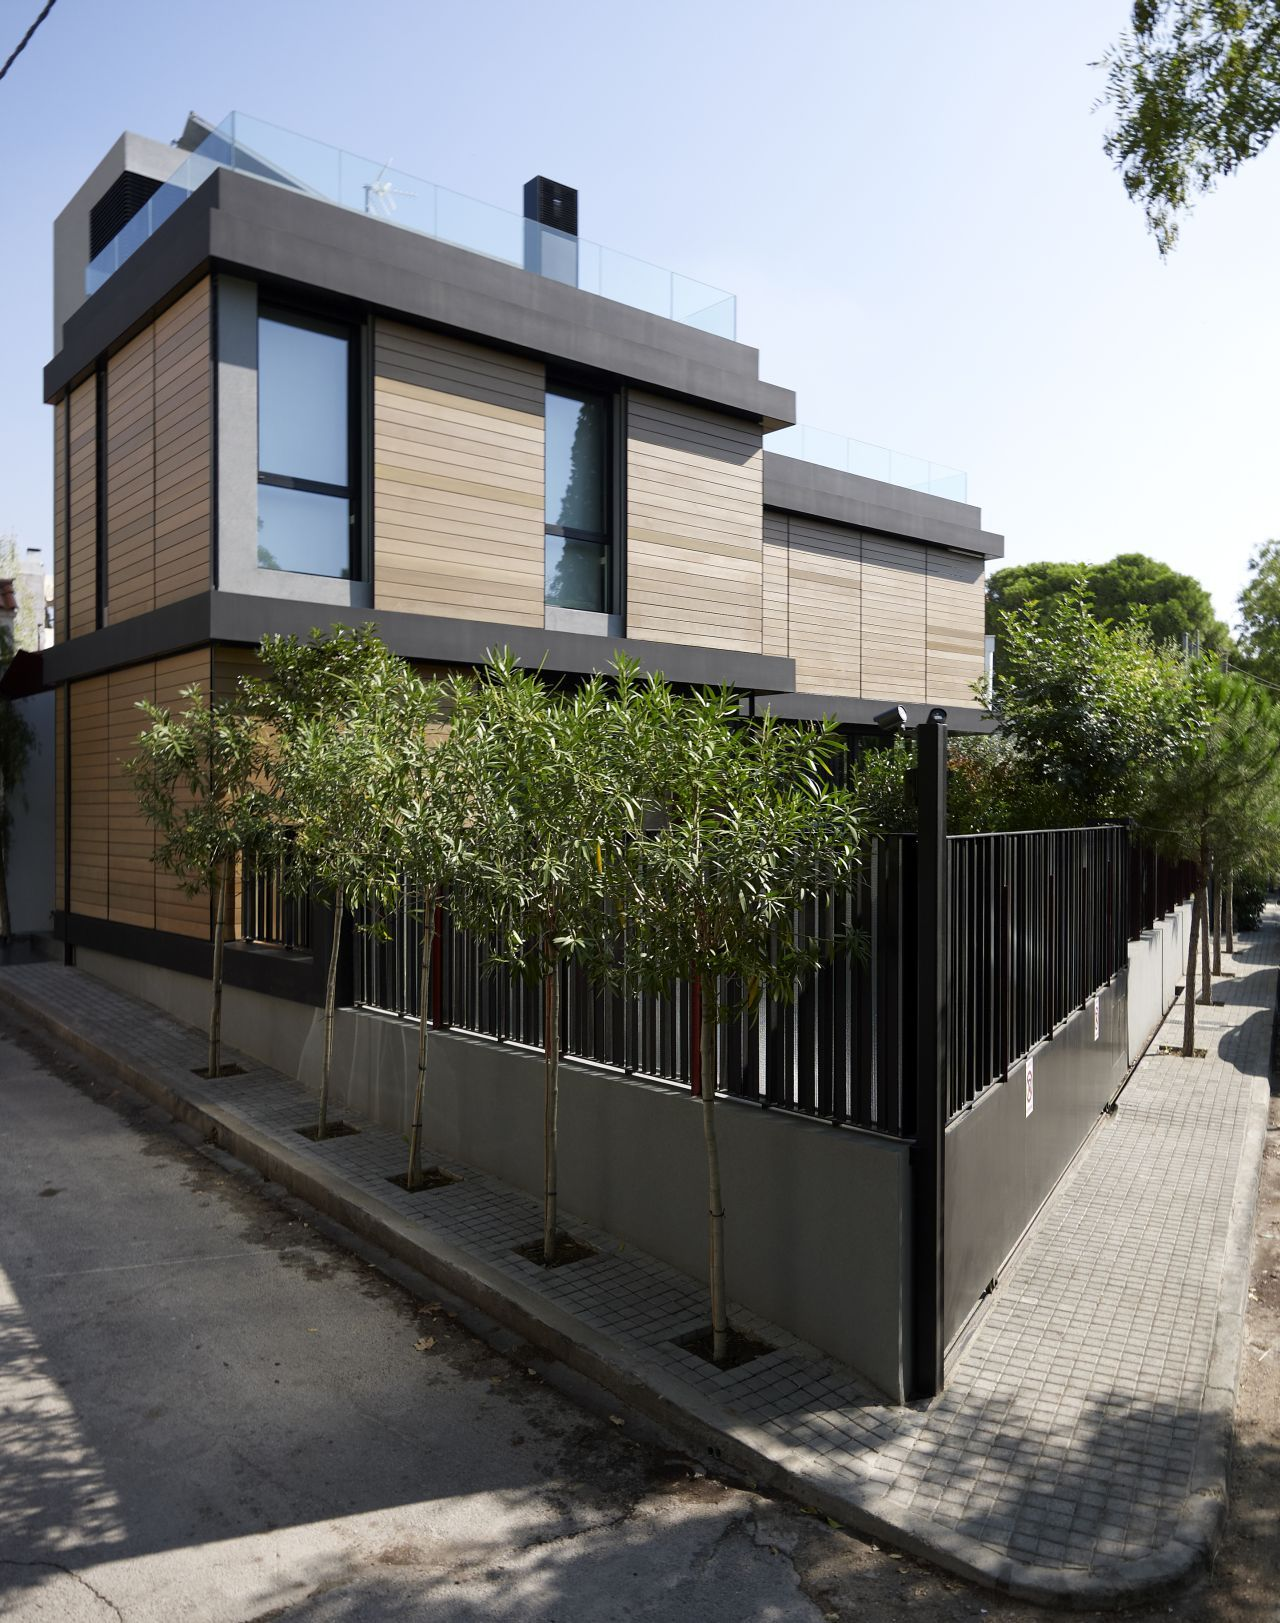 Single Family House in Kifisia by Spacelab (5)